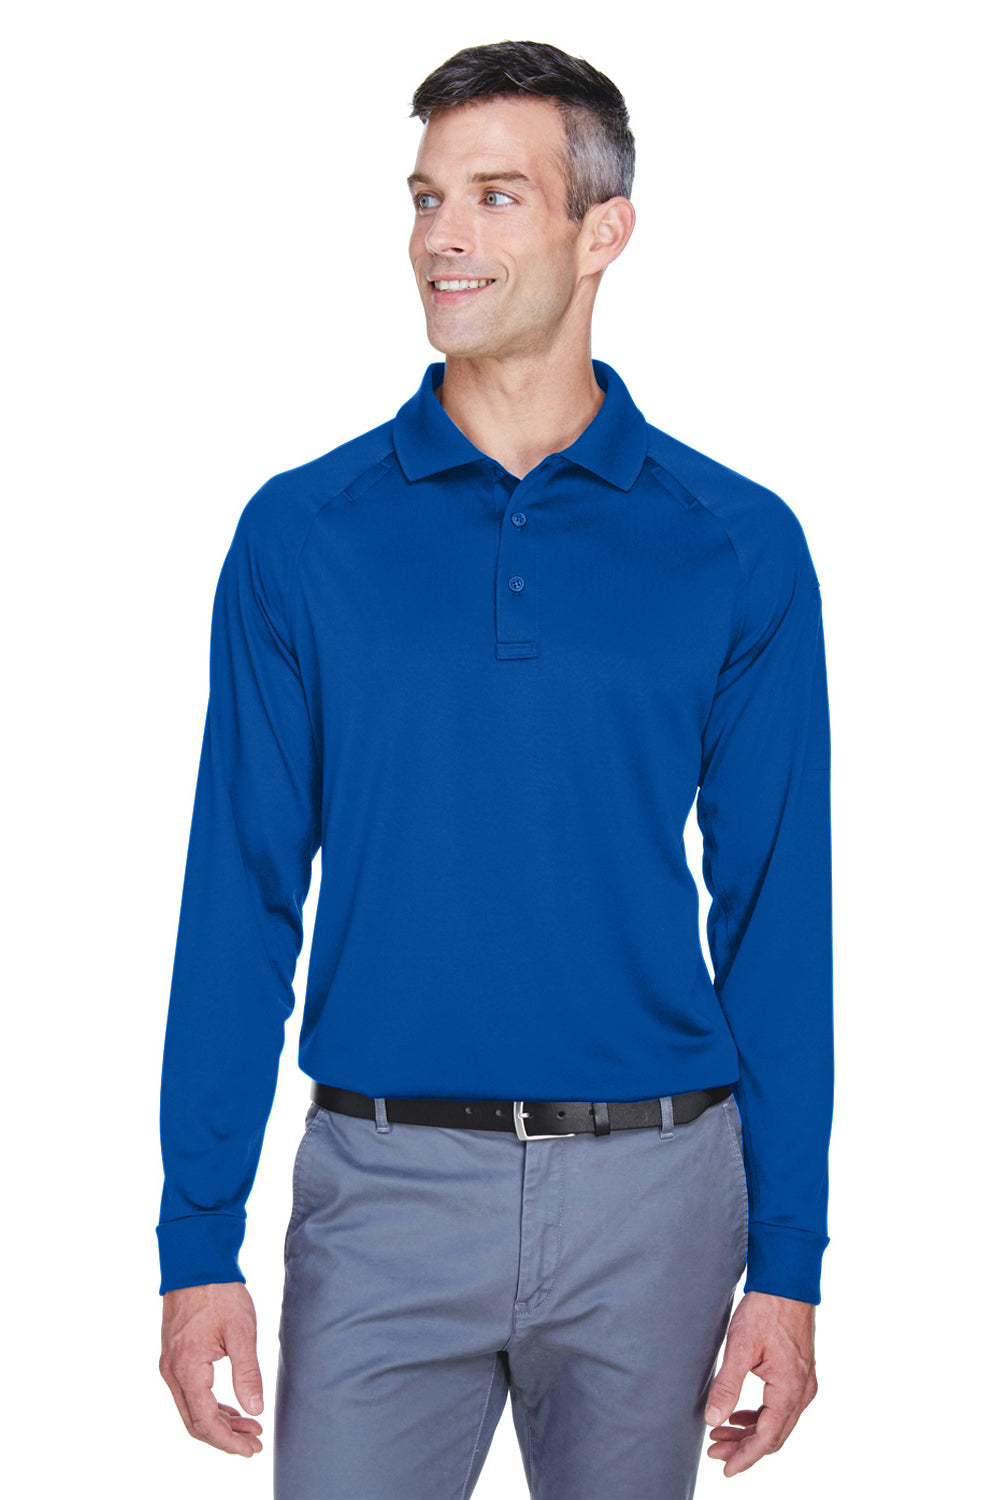 Harriton M211L Advantage Tactical Moisture Wicking Long Sleeve Polo Shirt Royal Blue Front